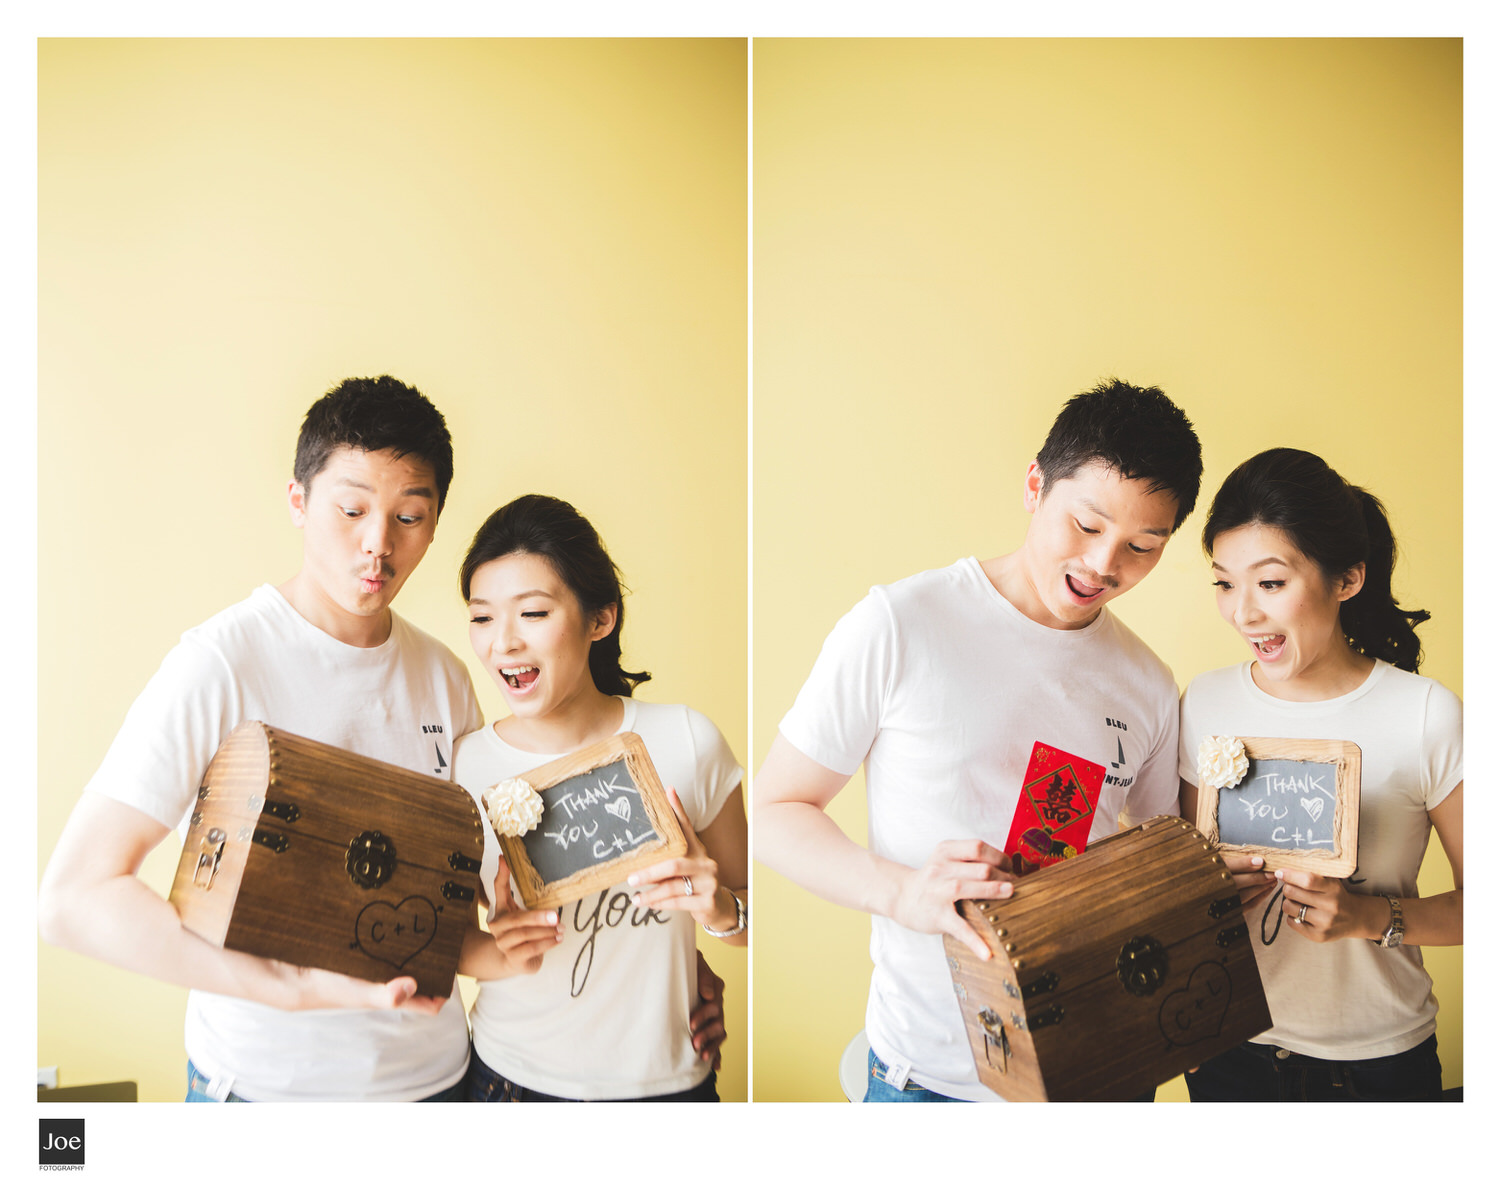 joefotography-47-newyork-pre-wedding-cindy-larry.jpg